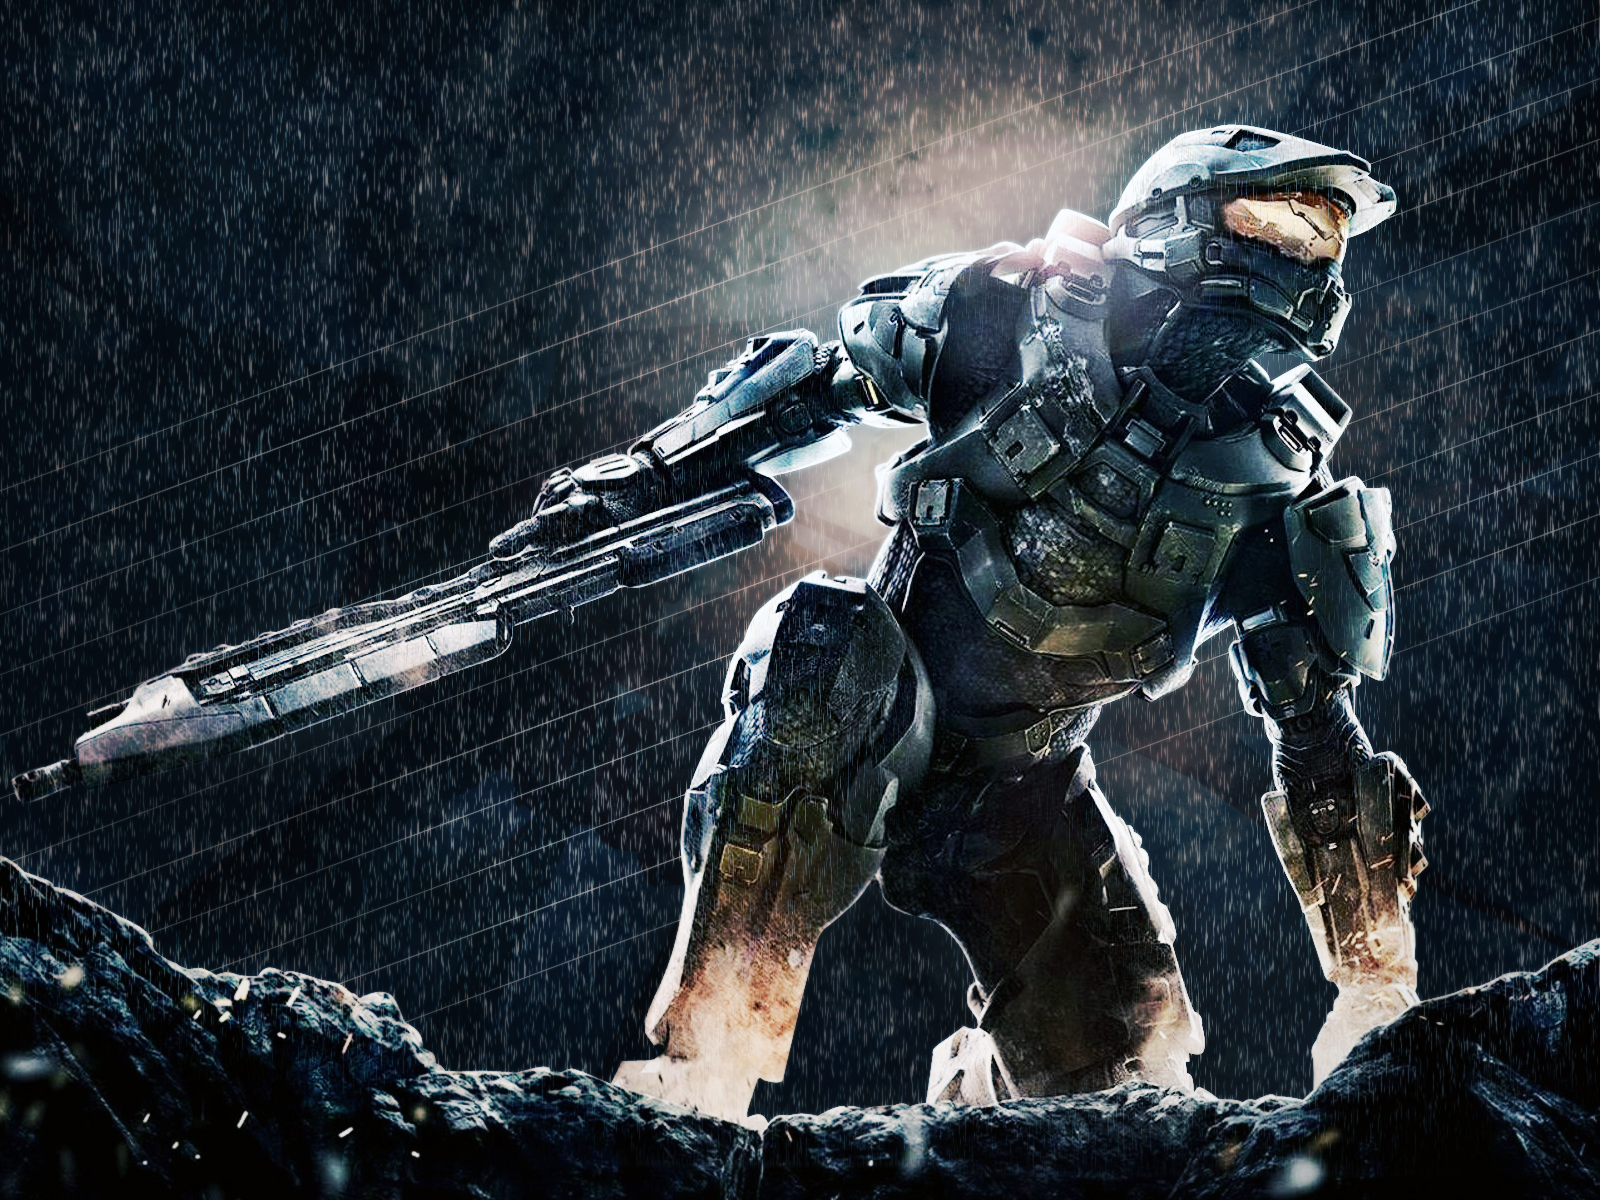 ENJOY Halo 4 Master Chief Wallpaper By Zehbehdee D5kob55